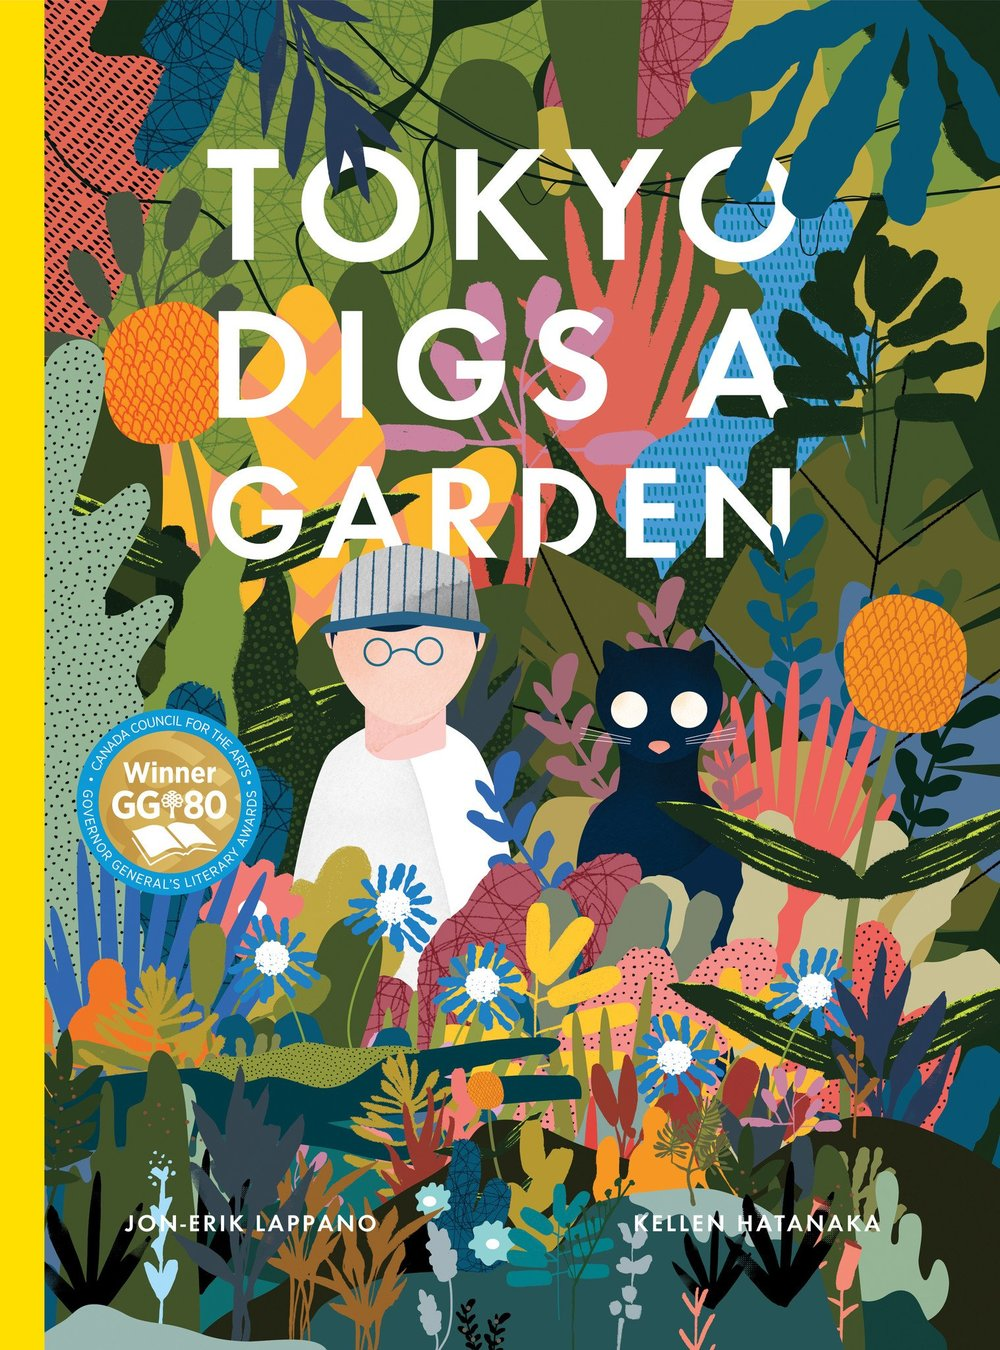 TOKYO DIGS A GARDEN - ★ 2016 Governor General's Literary Award Winner★ 2017 TD Canadian Children's Literature Award Finalist★ 2018 Sakura Medal Picture Book Nominee